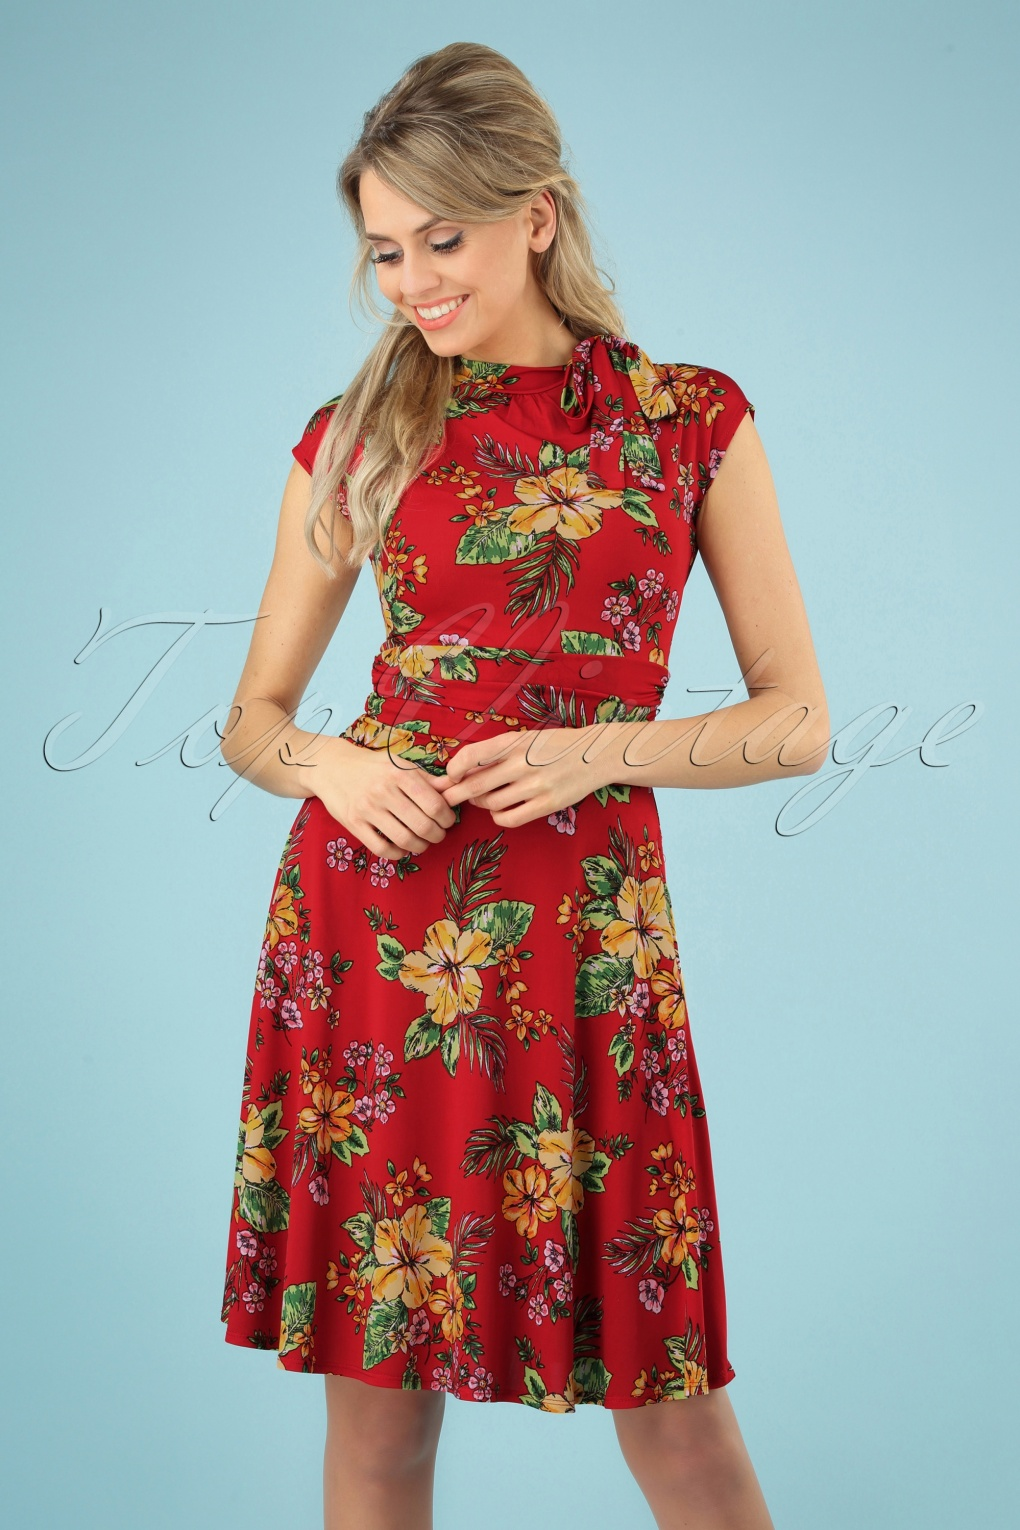 New Fifties Dresses | 50s Inspired Dresses 50s Audrey Tiki Floral Bombshell Dress in Red �61.78 AT vintagedancer.com